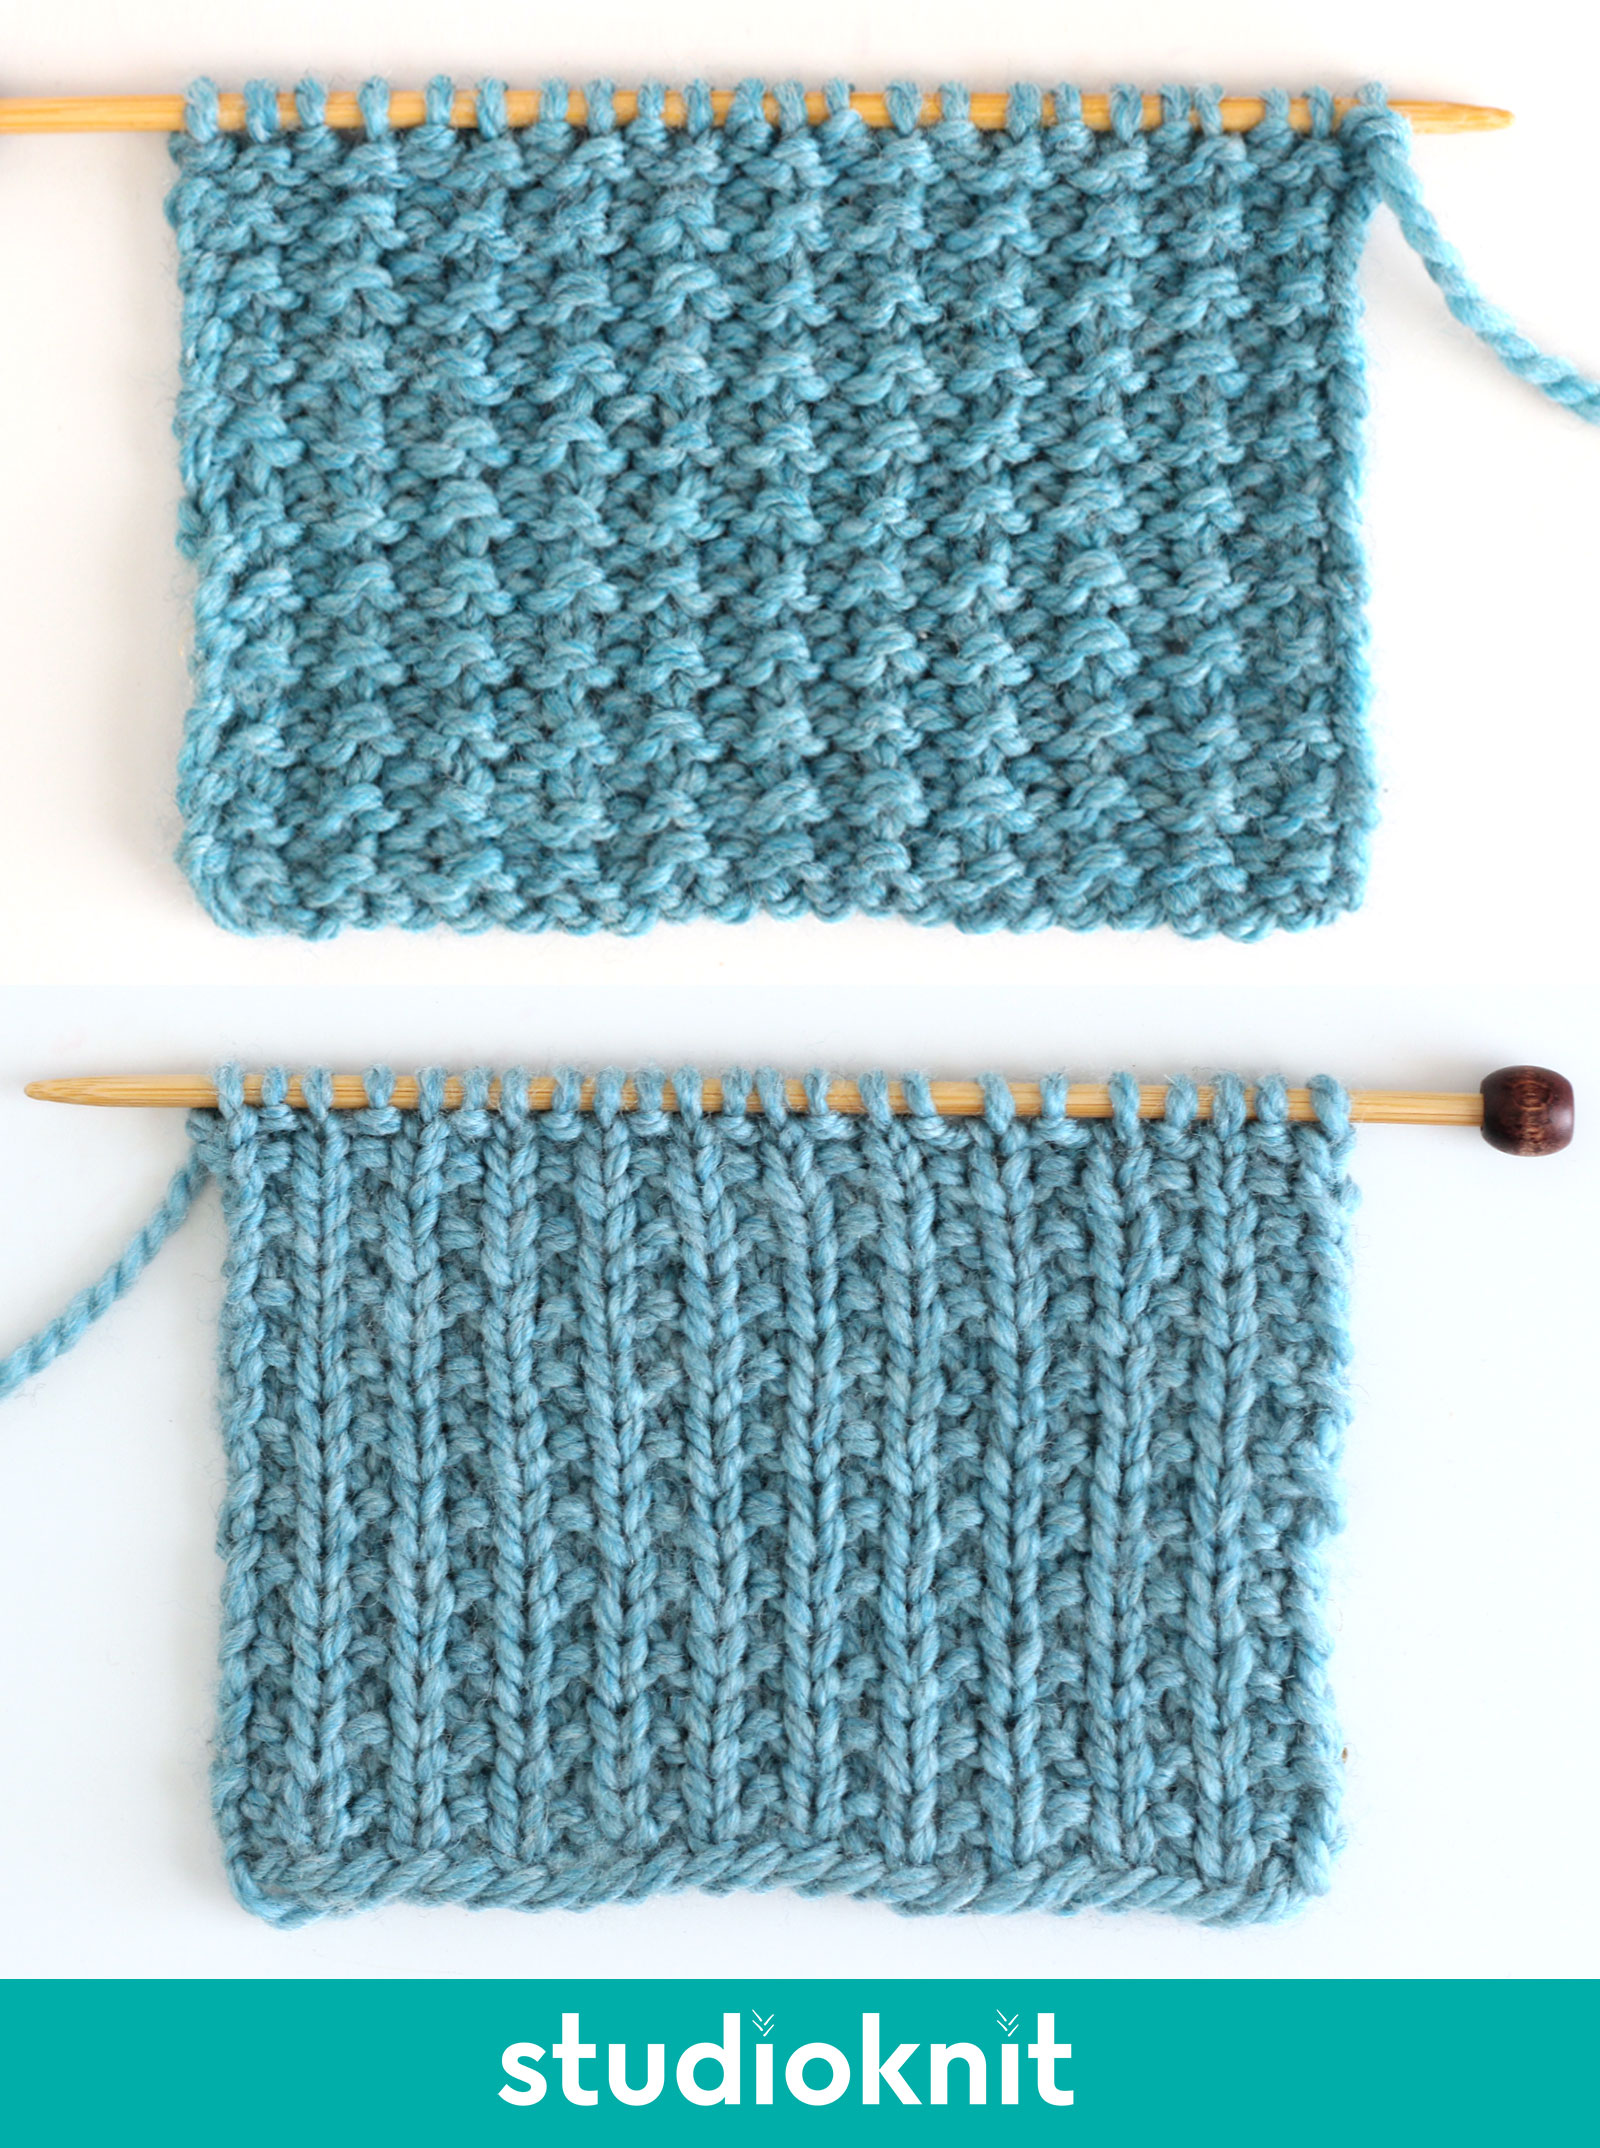 Sand Stitch Knitting Pattern both the right and wrong sides in blue yarn color.